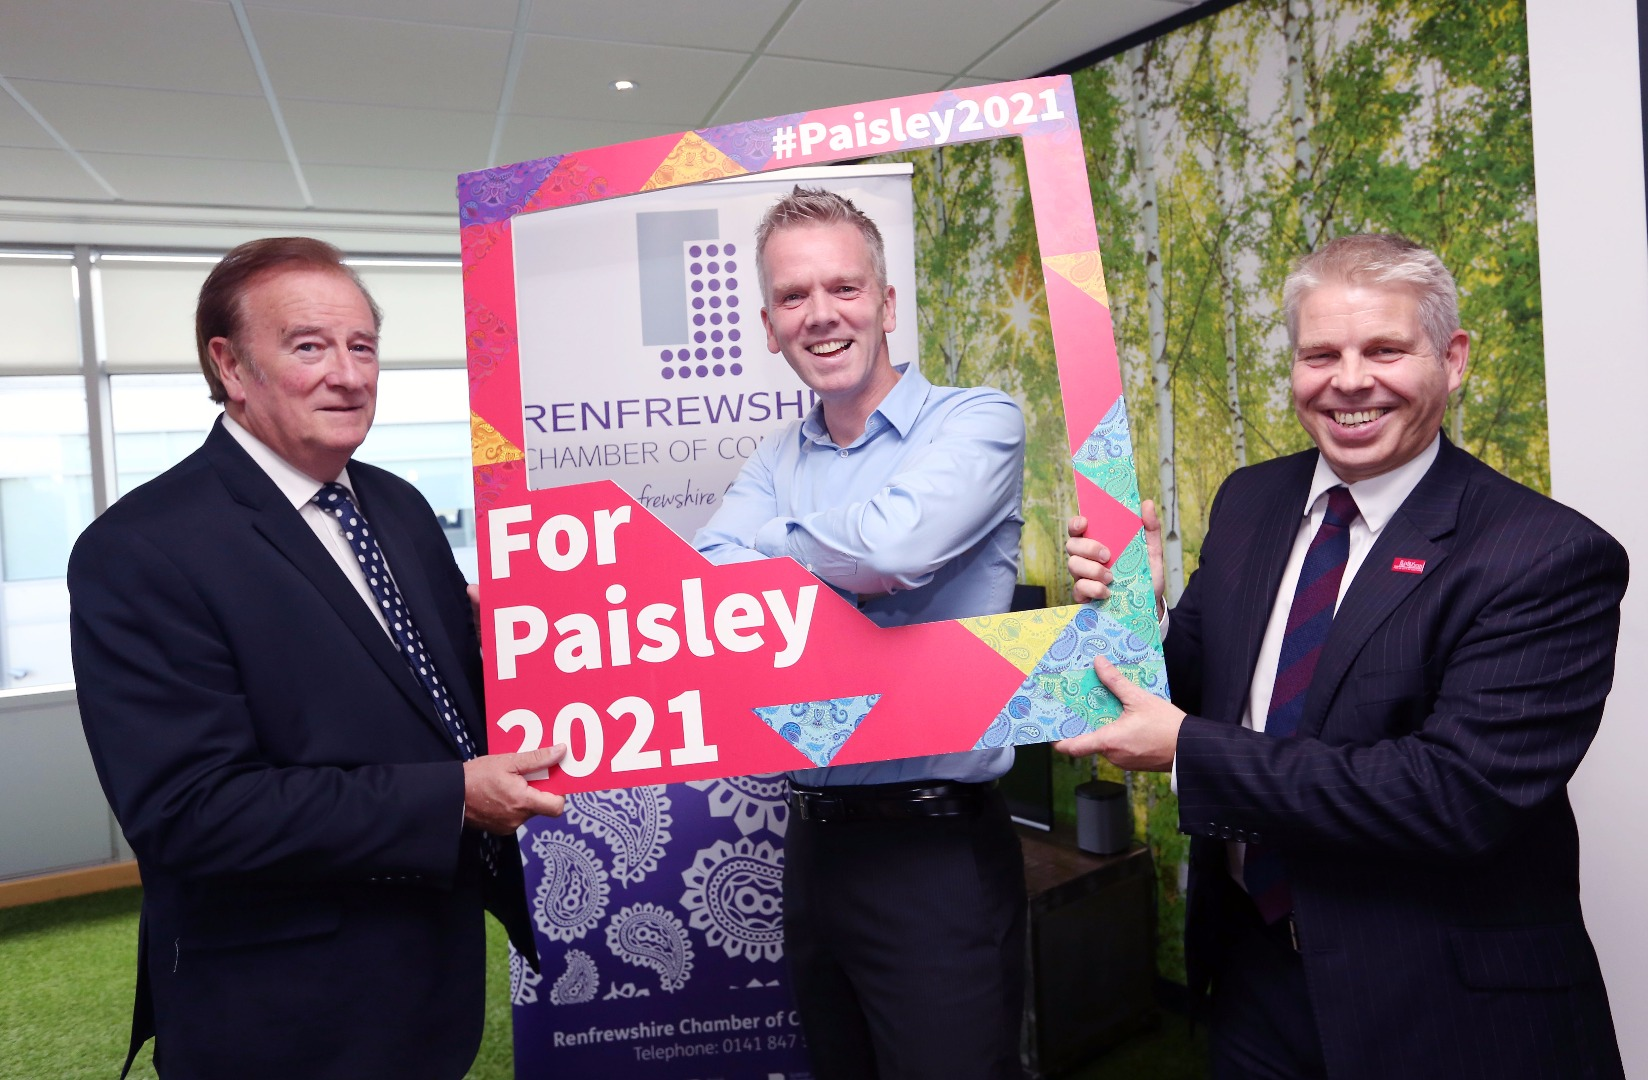 Renfrewshire Chamber says Paisley 2021 bid will be good for business